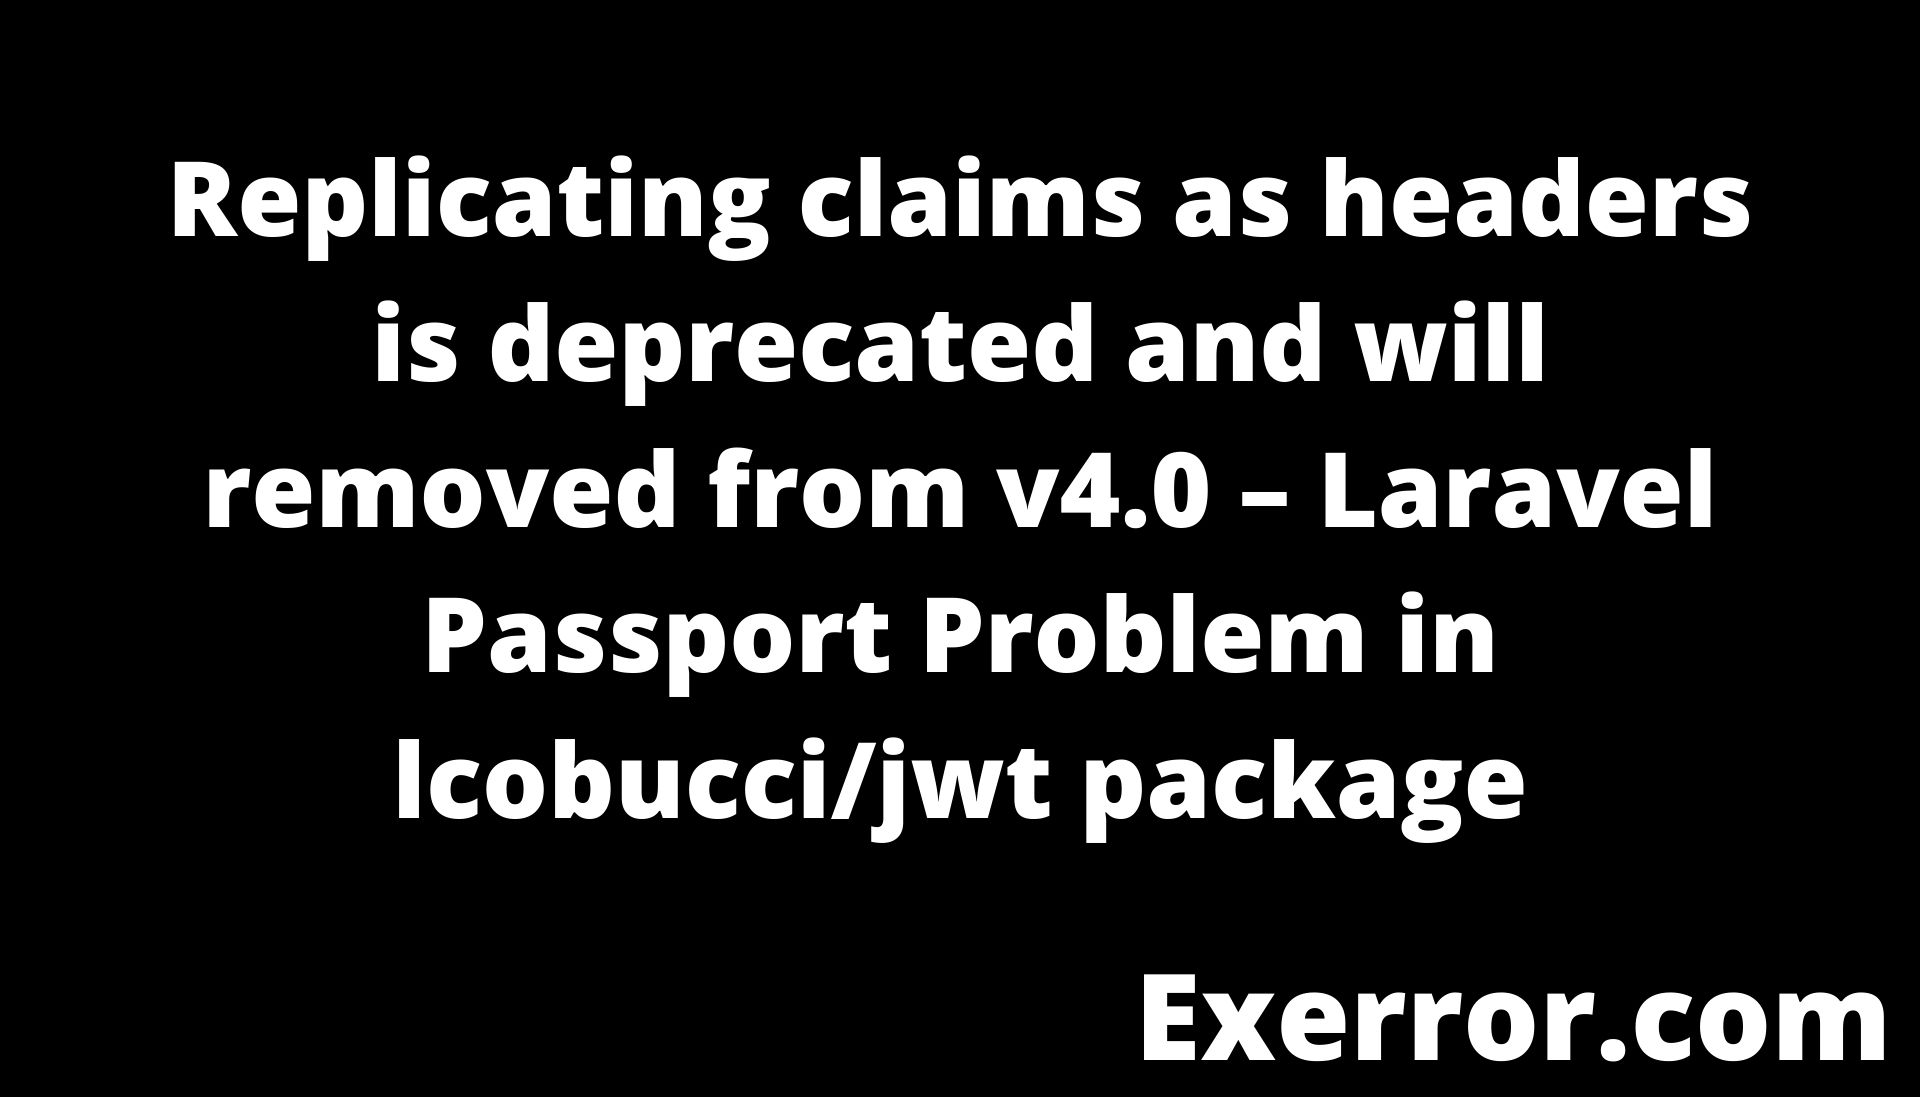 Replicating claims as headers is deprecated and will removed from v4.0 – Laravel Passport Problem in lcobuccijwt package